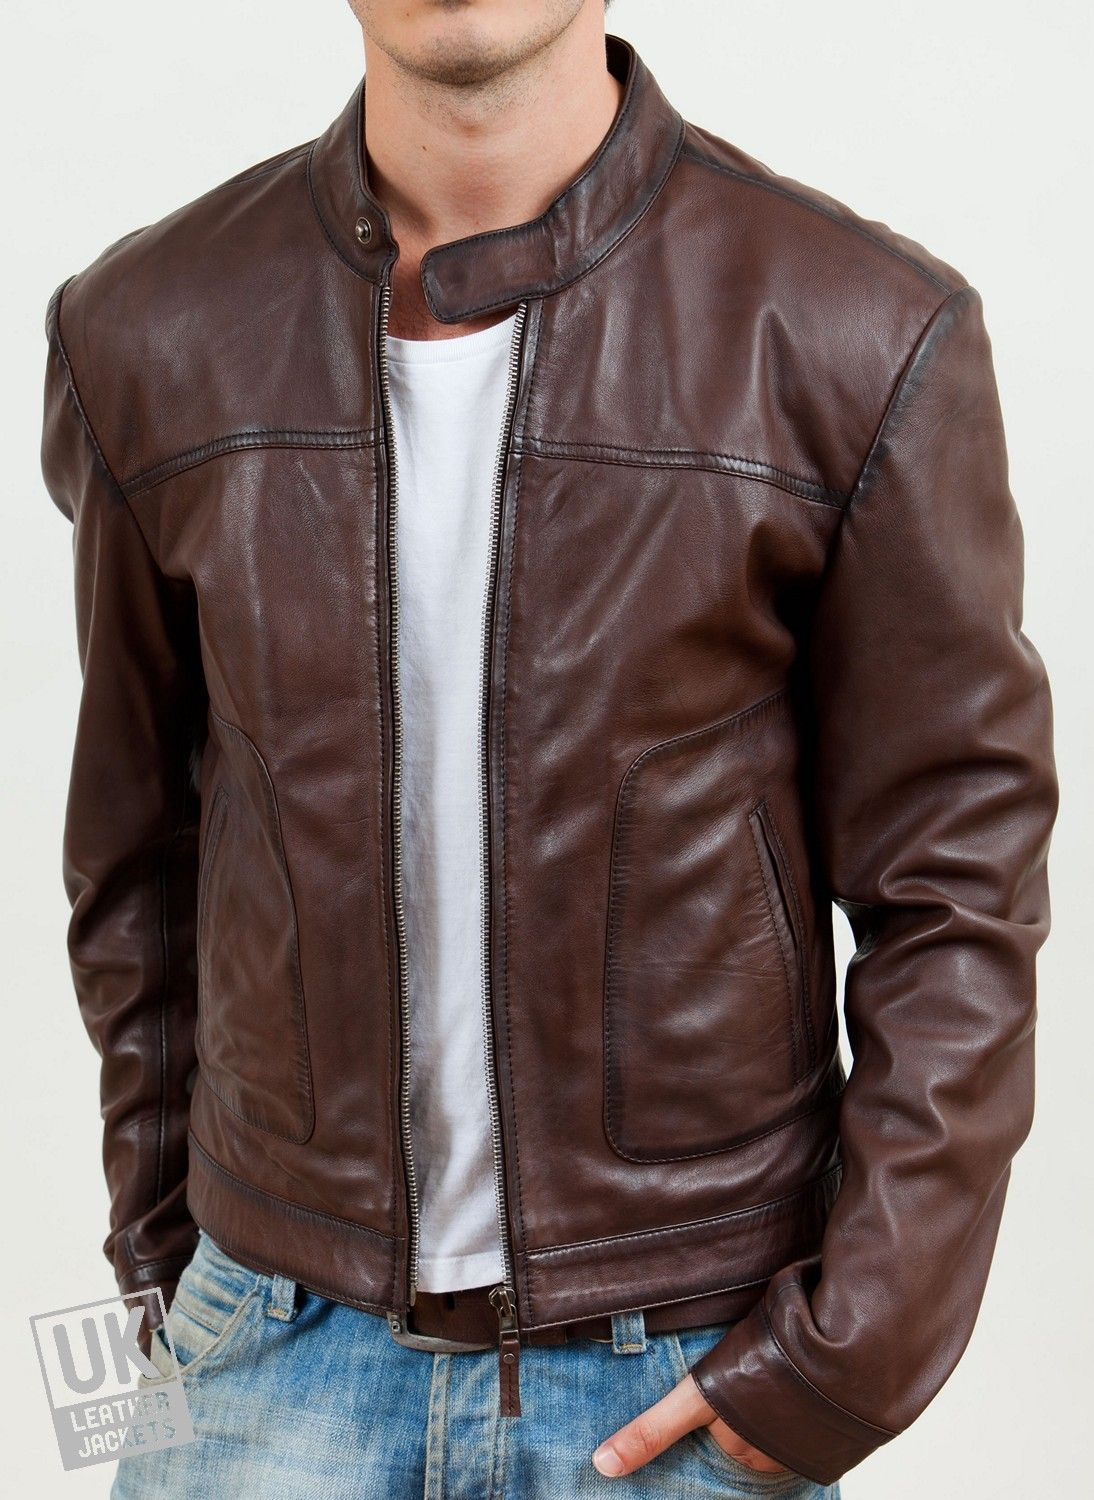 X-Men Origins: Wolverine inspired leather jacket from SoulRevolver ...